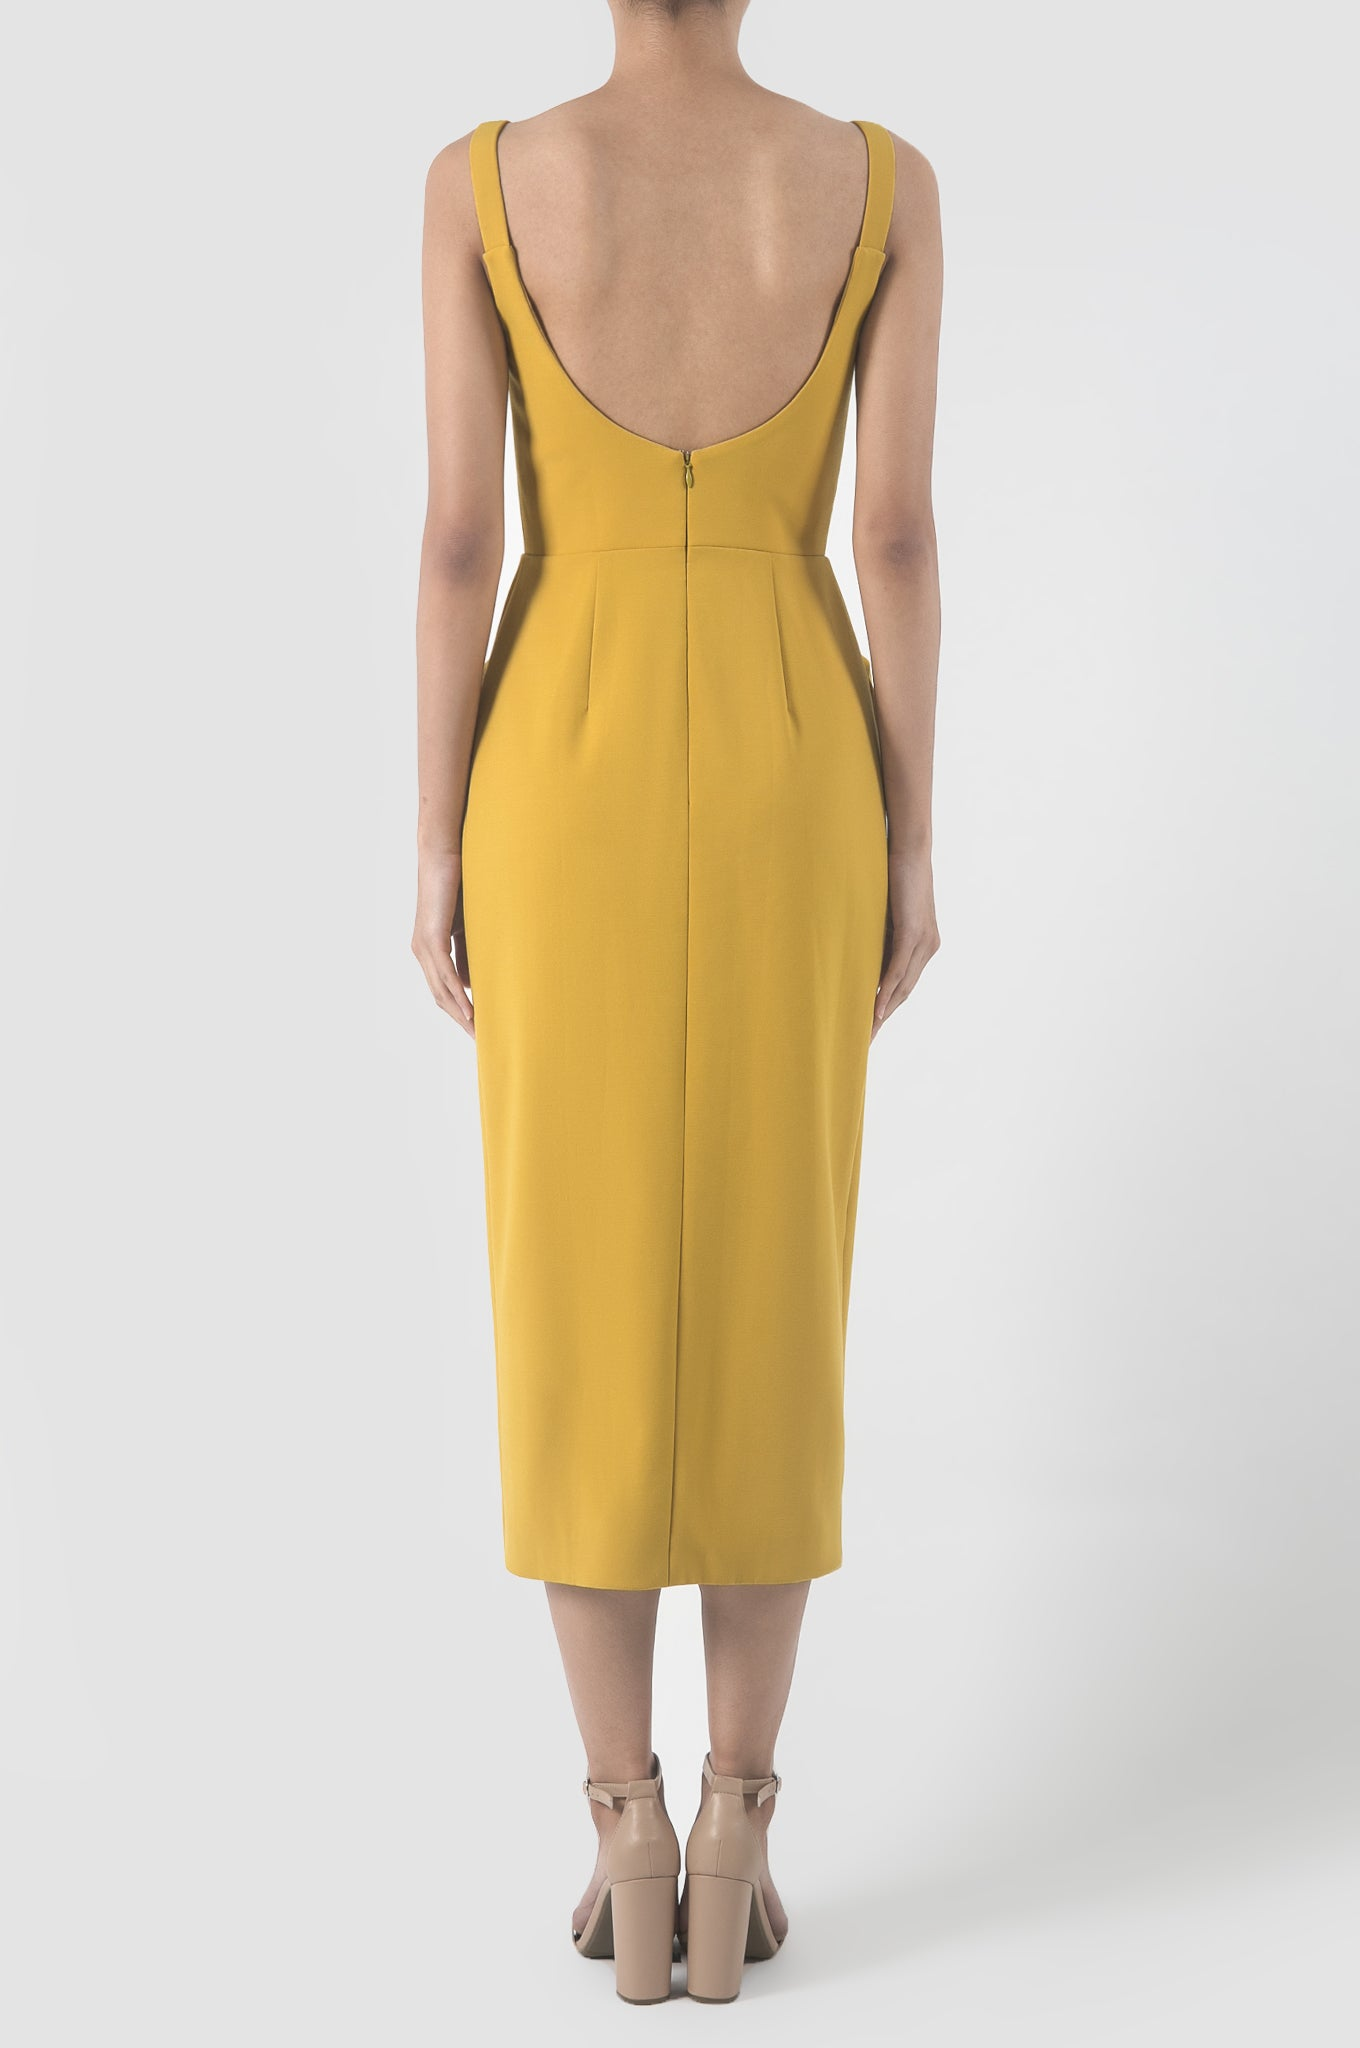 Sunflower Yellow Chicanos Dress